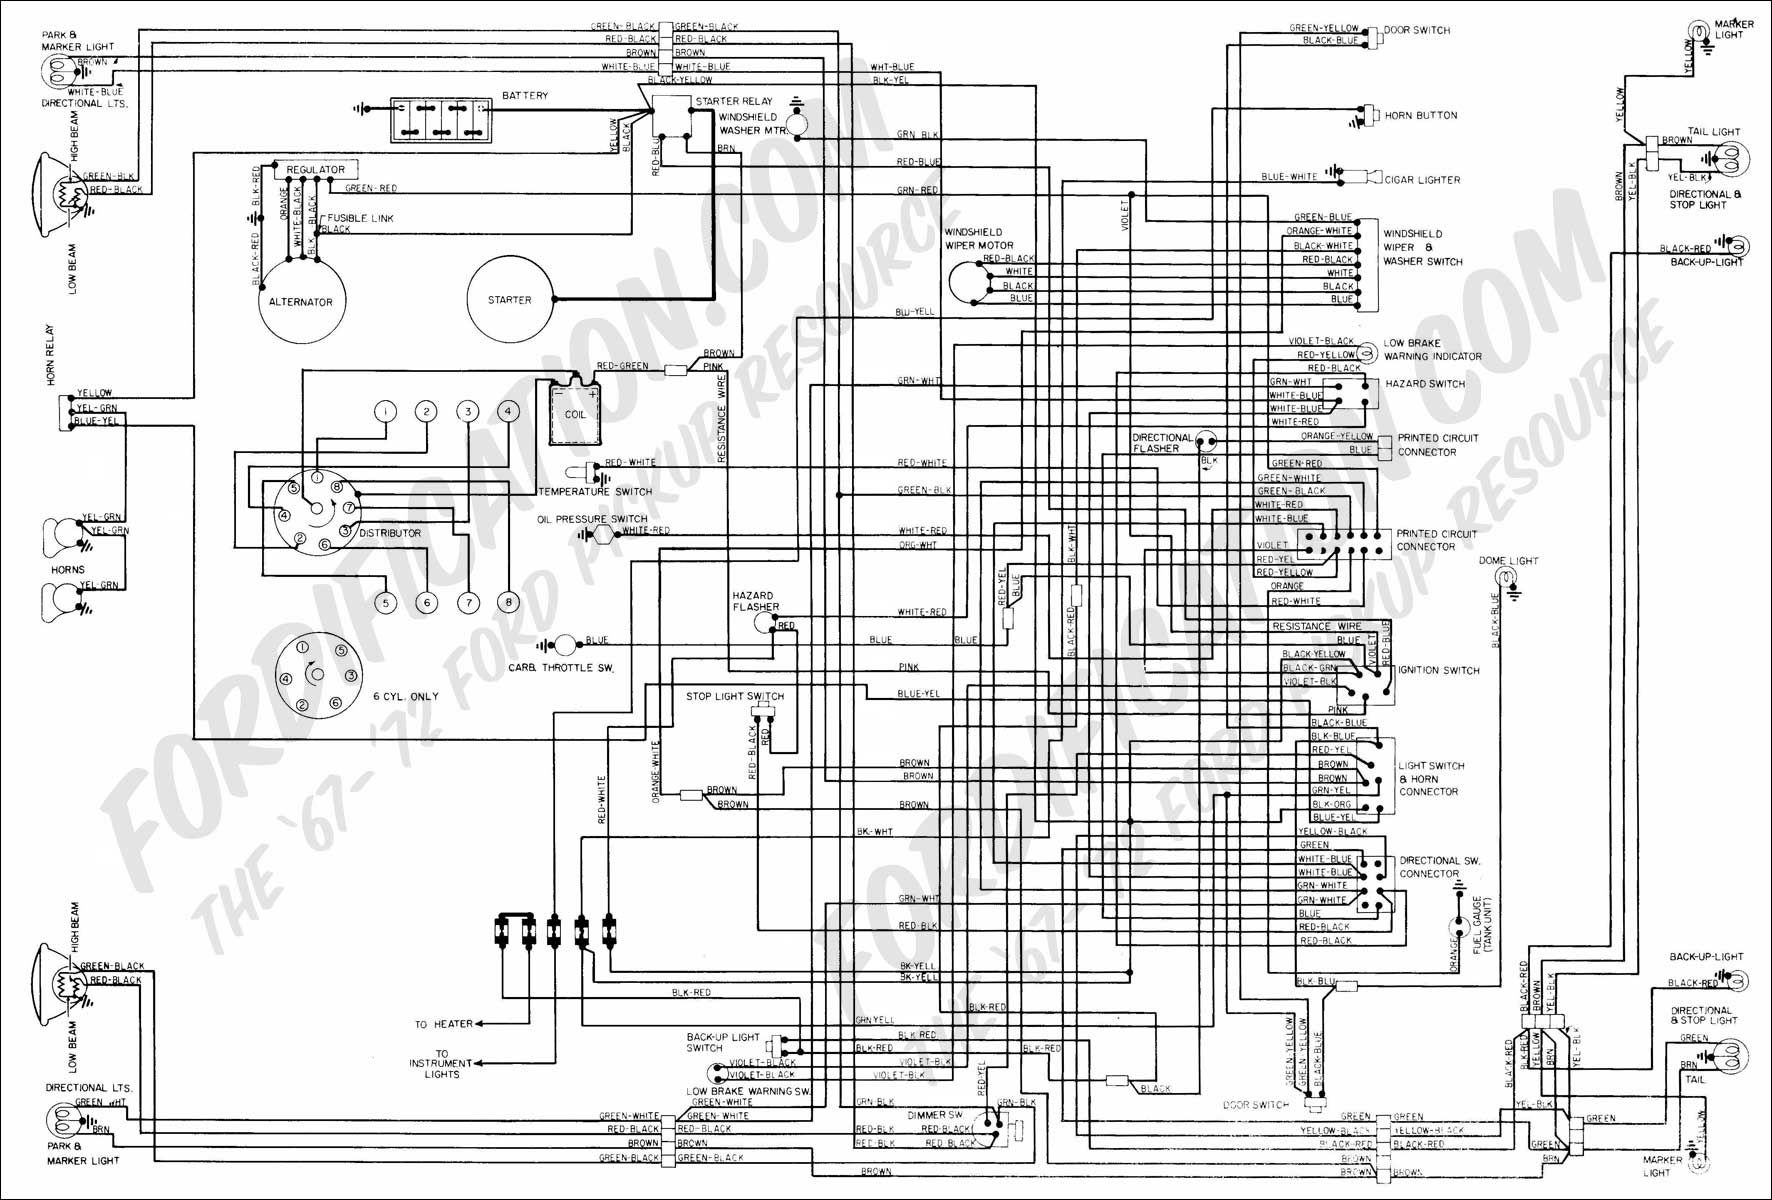 be873db495753211c2fc9a563f039b29 solenoid 1971 f250 1971 ford f100 wiring diagram www ford 1971 ford f250 wiring diagram at nearapp.co